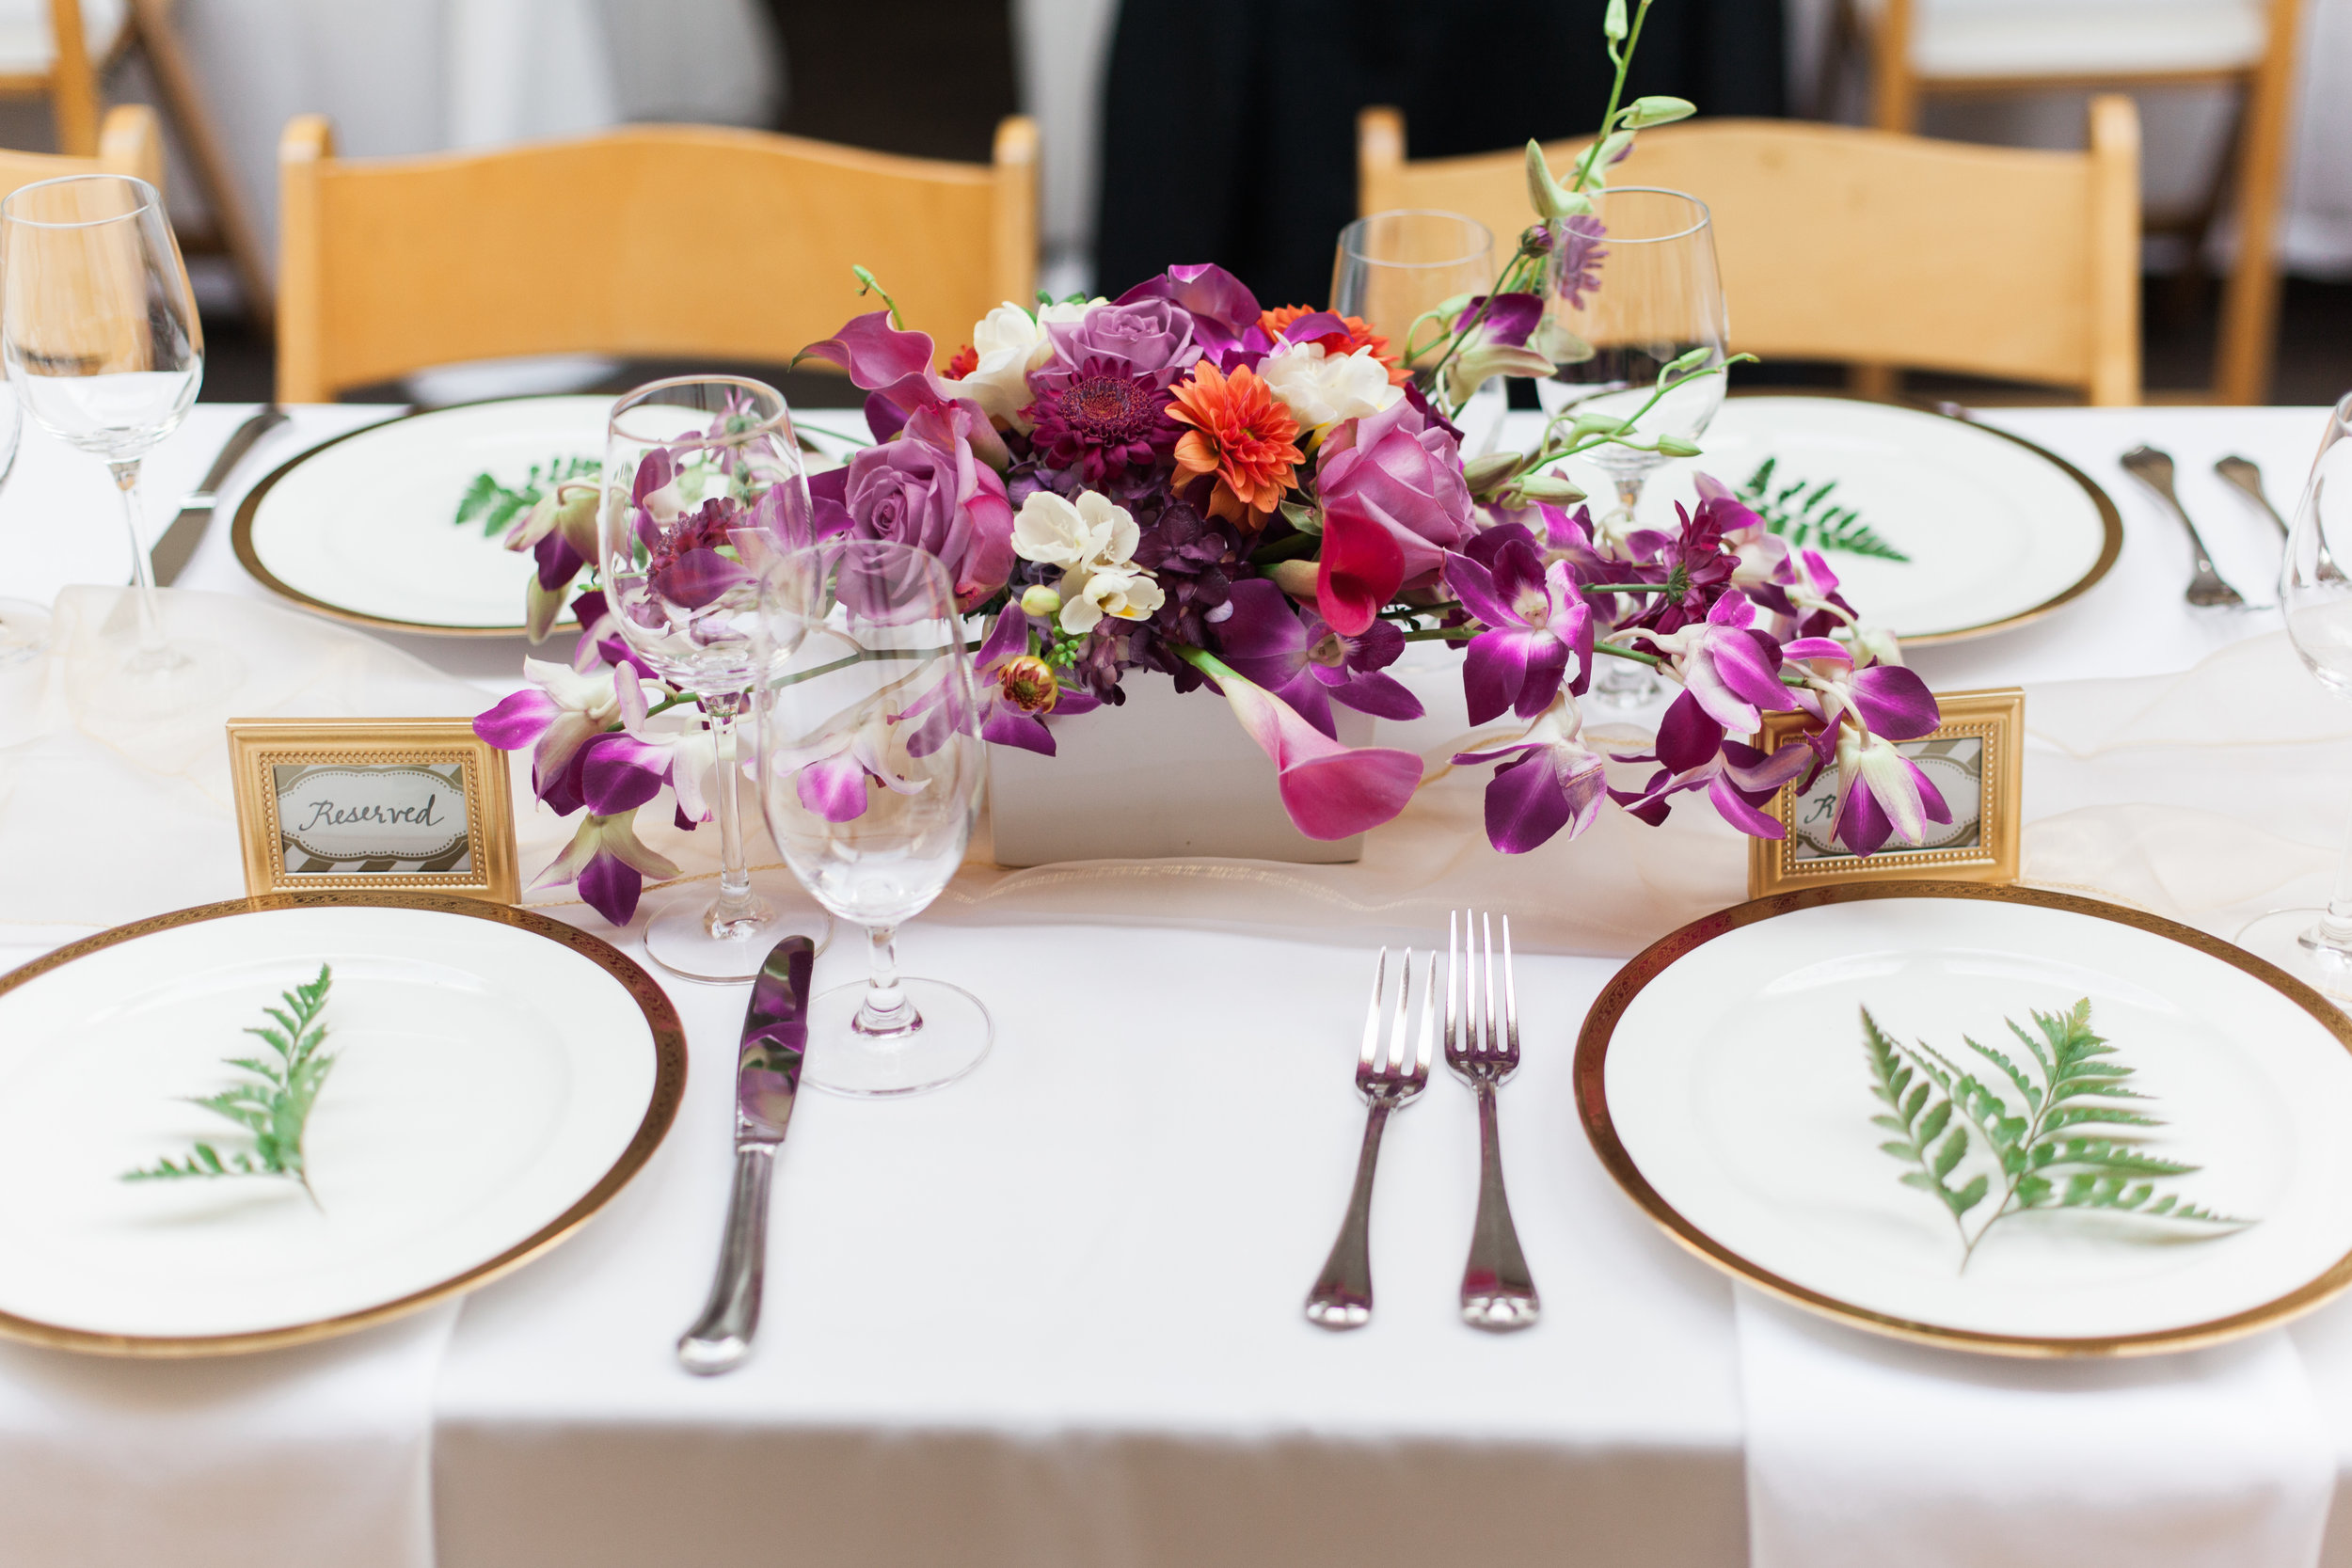 style-inspired-wedding-at-firehouse-8-in-san-francisco-76.jpg